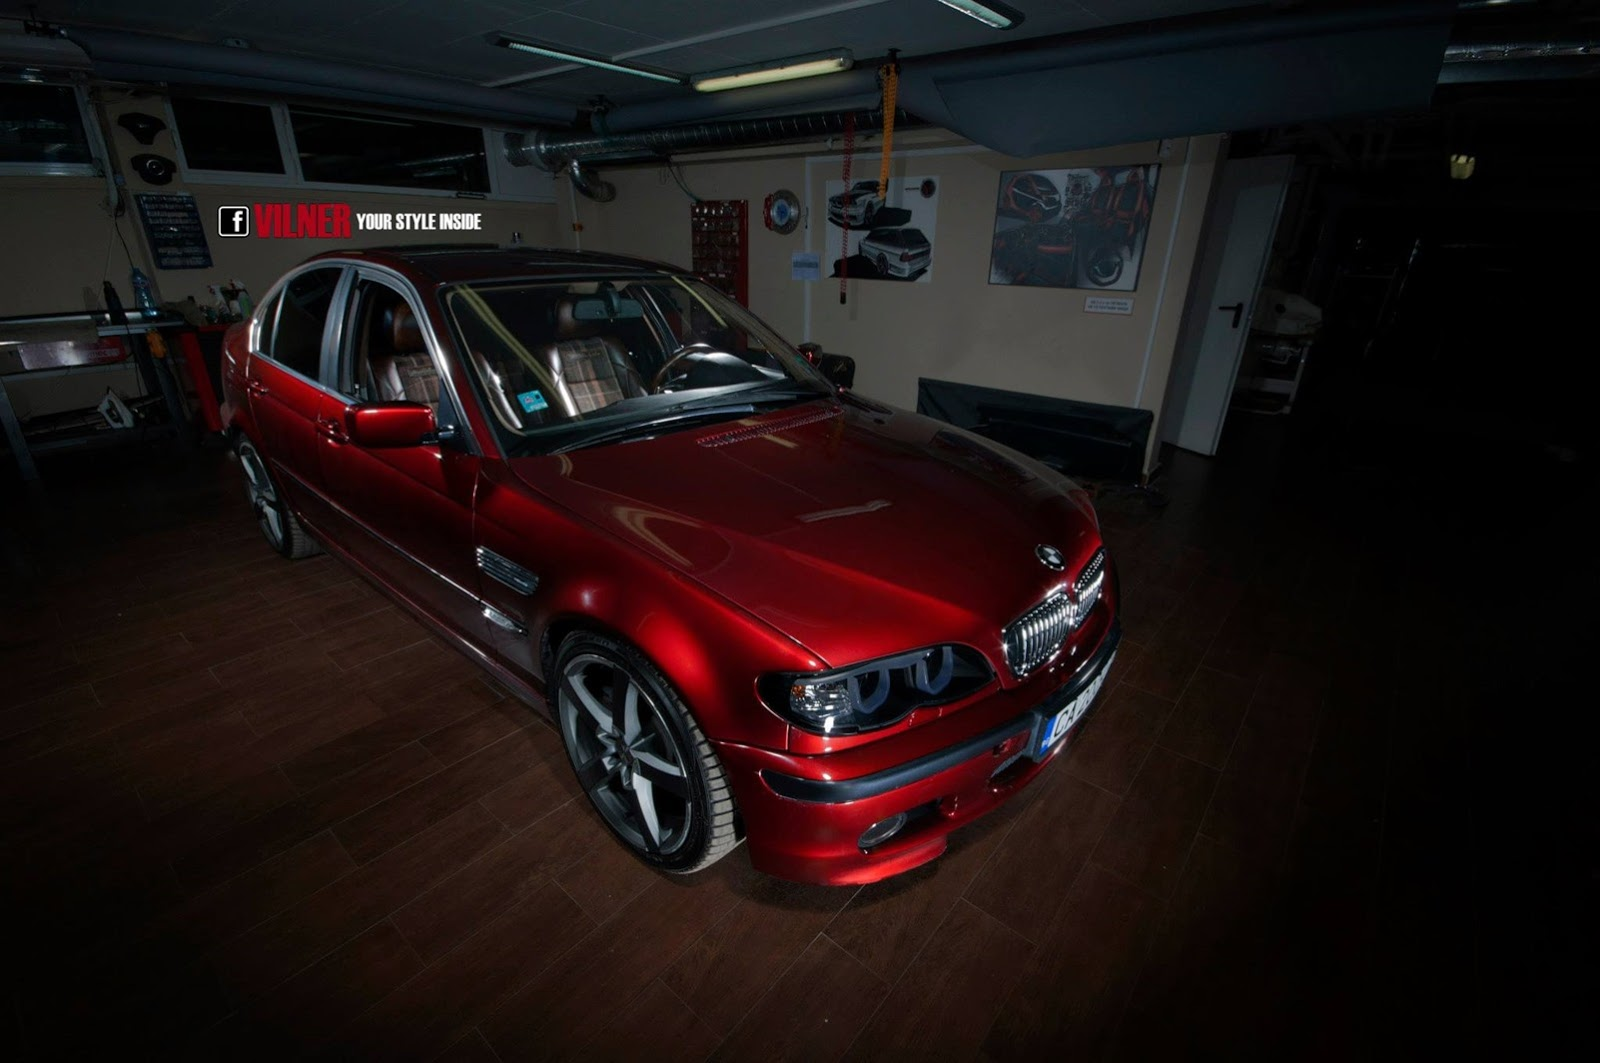 Bmw e46 3 series gets hipster interior from vilner for Bmw nasa garage juillet niort